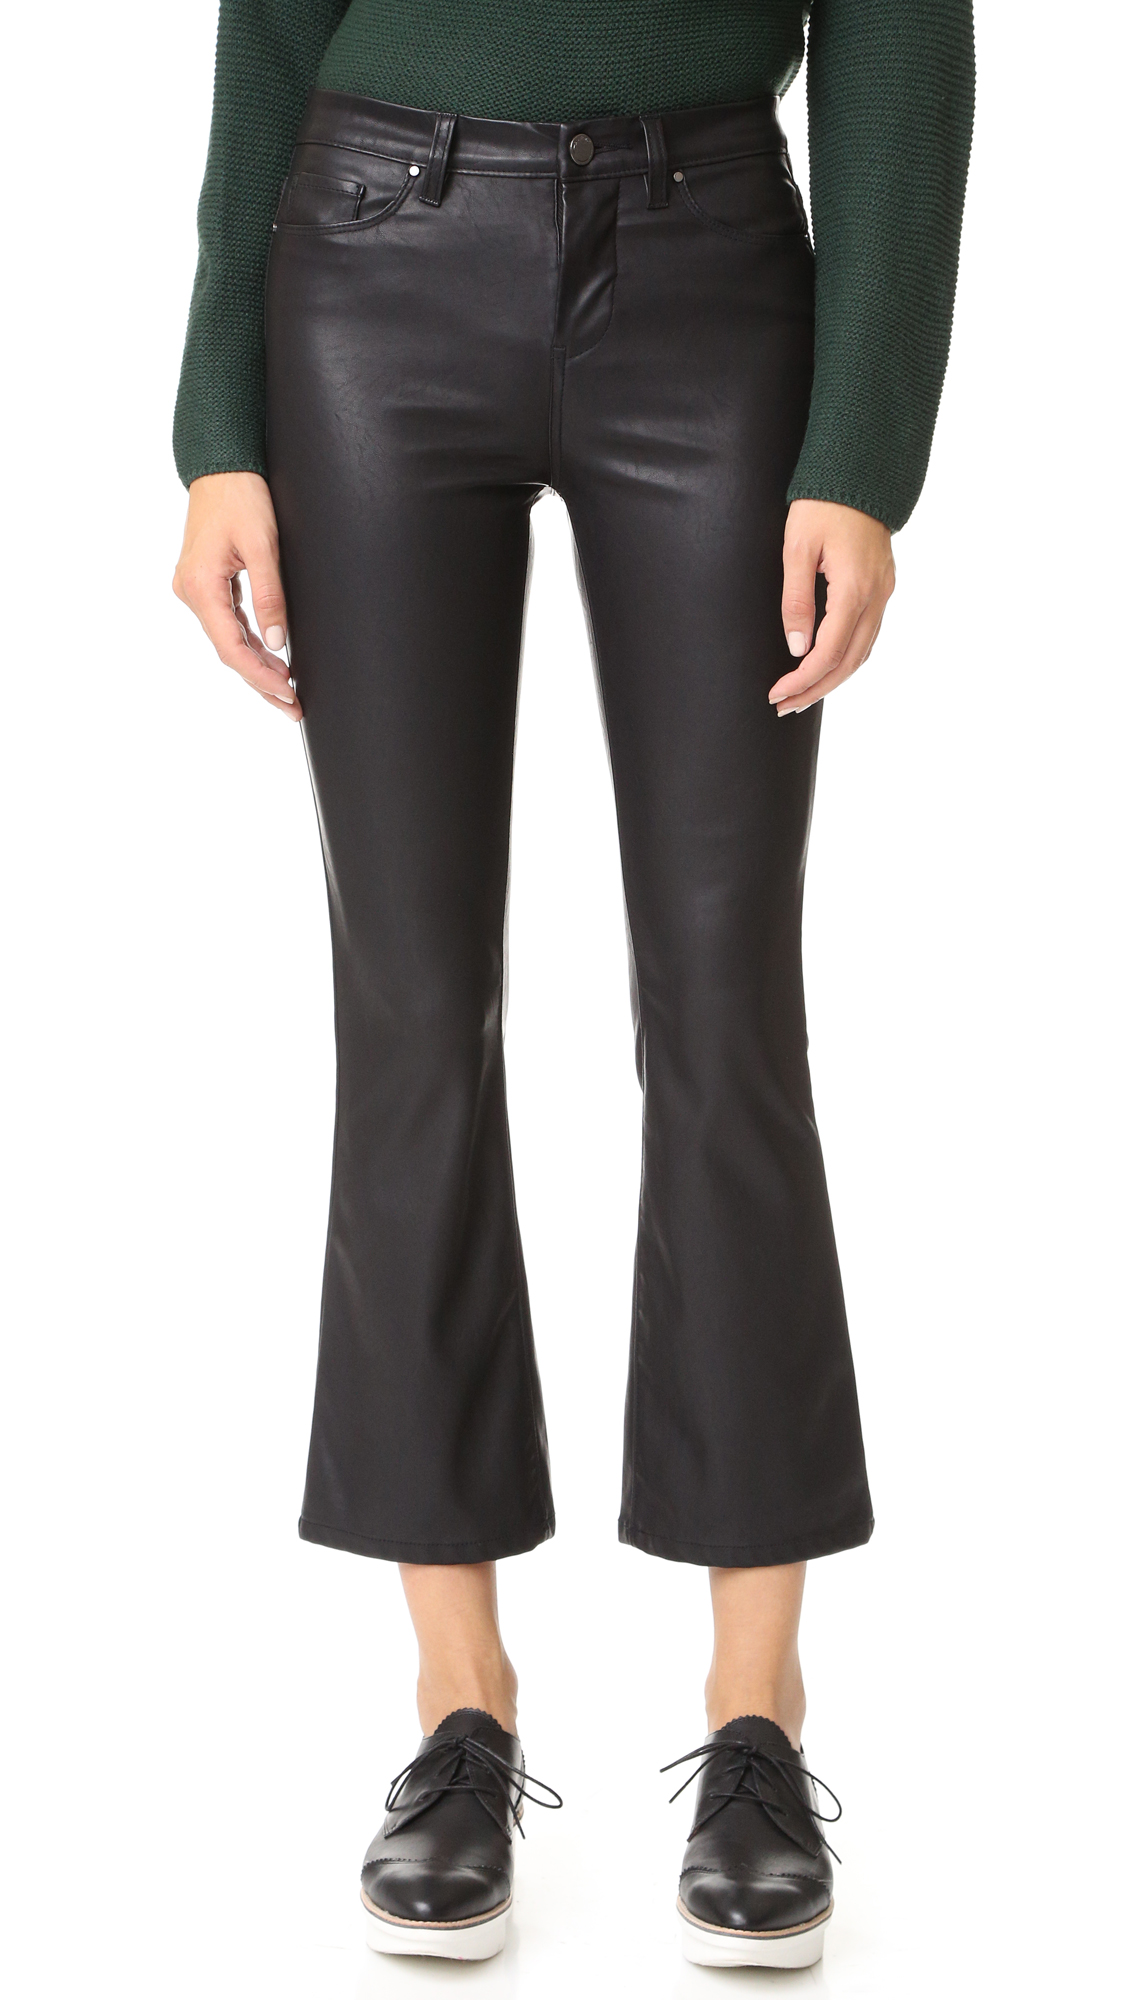 Exclusive to Shopbop. Faux leather Blank Denim pants in a slightly flared profile.5 pocket styling. Button closure and zip fly. Fabric: Faux leather. 60% polyester/40% viscose. Spot clean. Imported, China. Measurements Rise: 9.25in / 23.5cm Inseam: 26.5in / 67cm